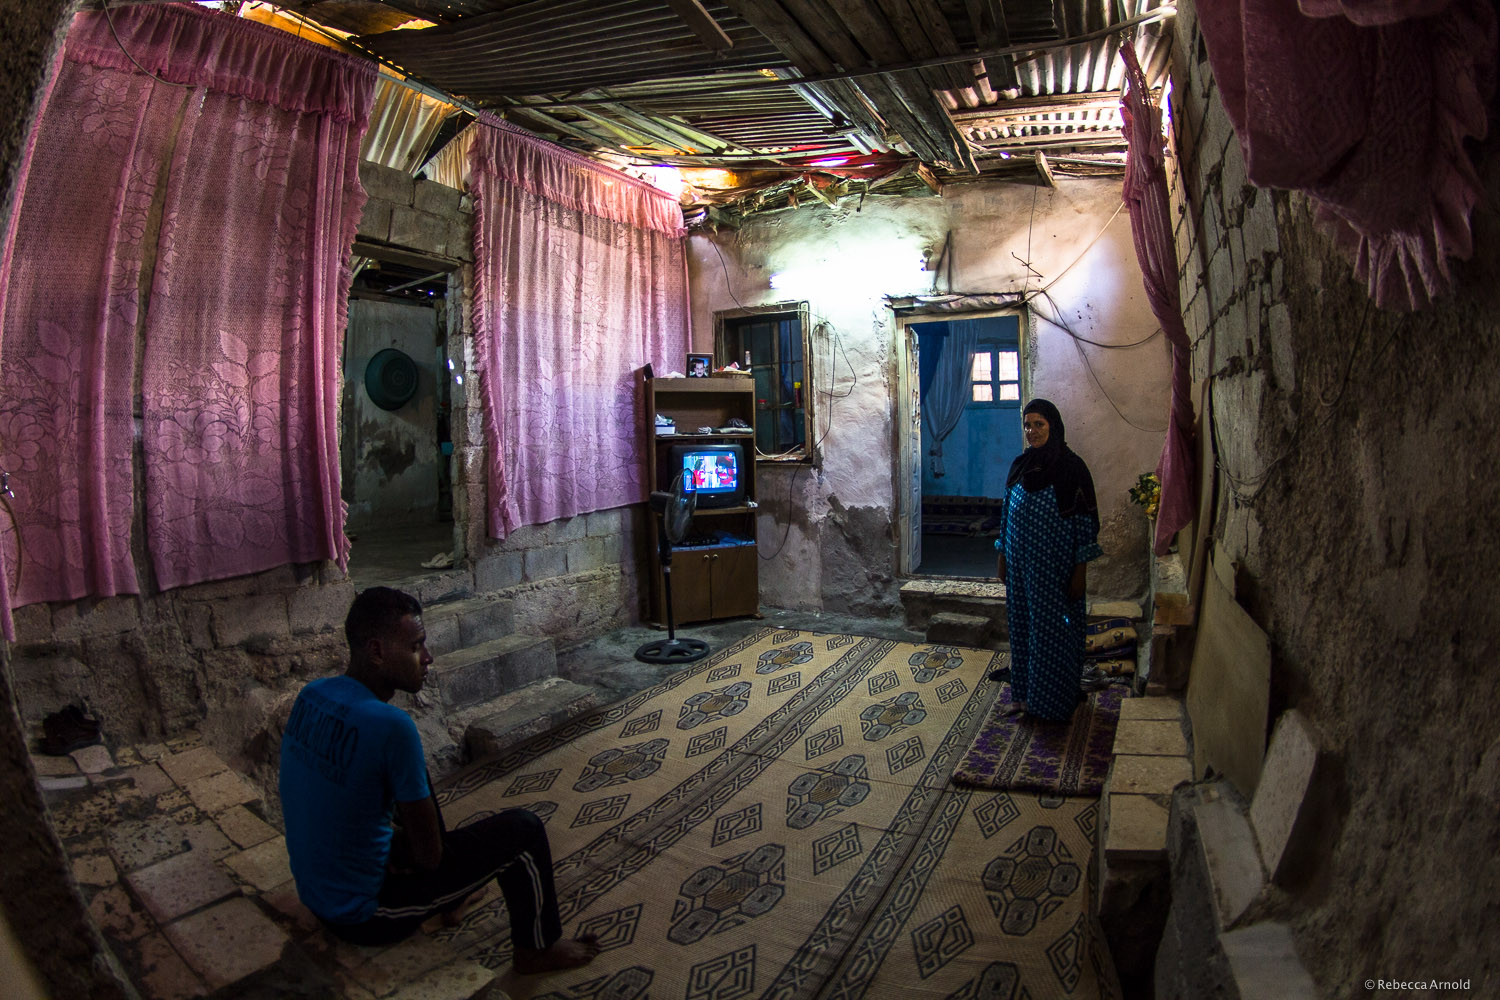 Syrian refugee mother and son, making a home in abandoned house  with no roof. Zarqa, Jordan